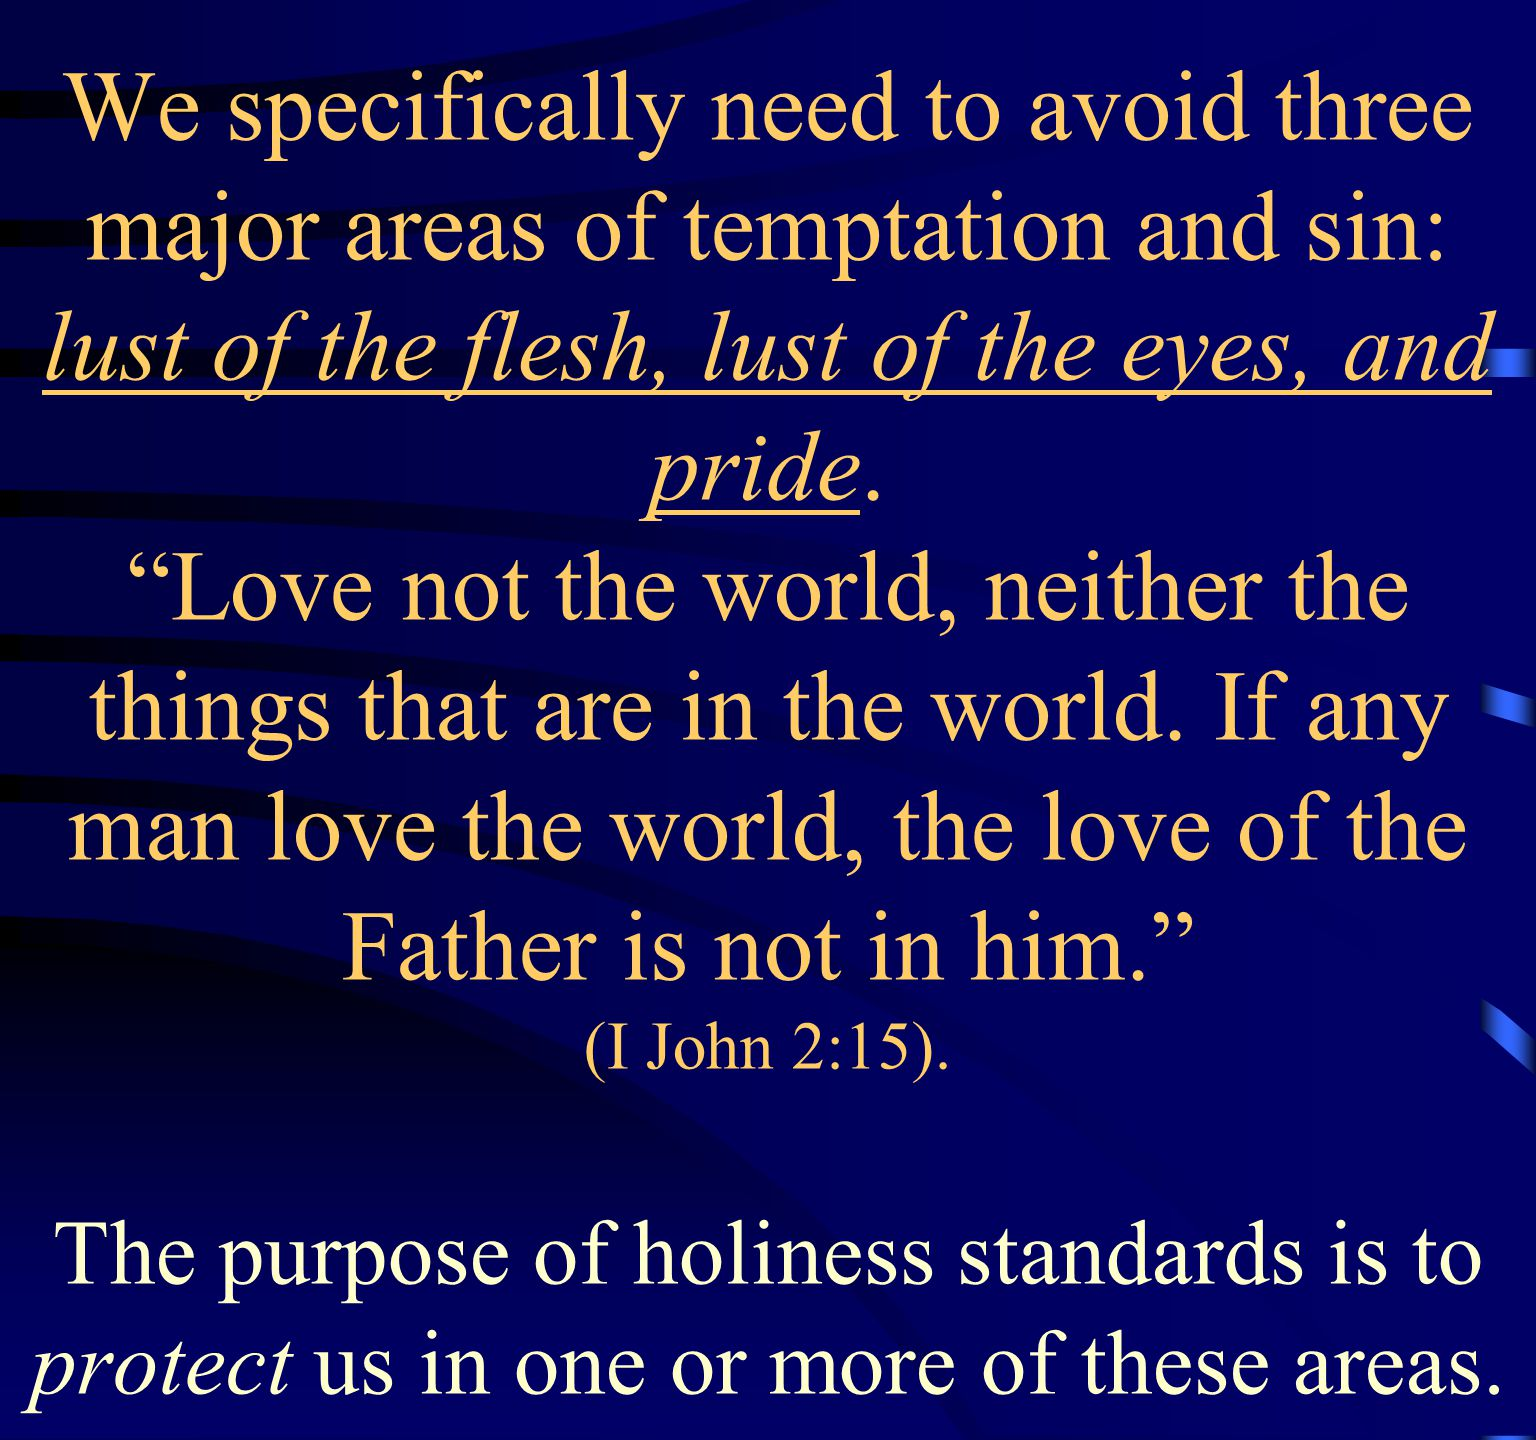 We specifically need to avoid three major areas of temptation and sin: lust of the flesh, lust of the eyes, and pride.